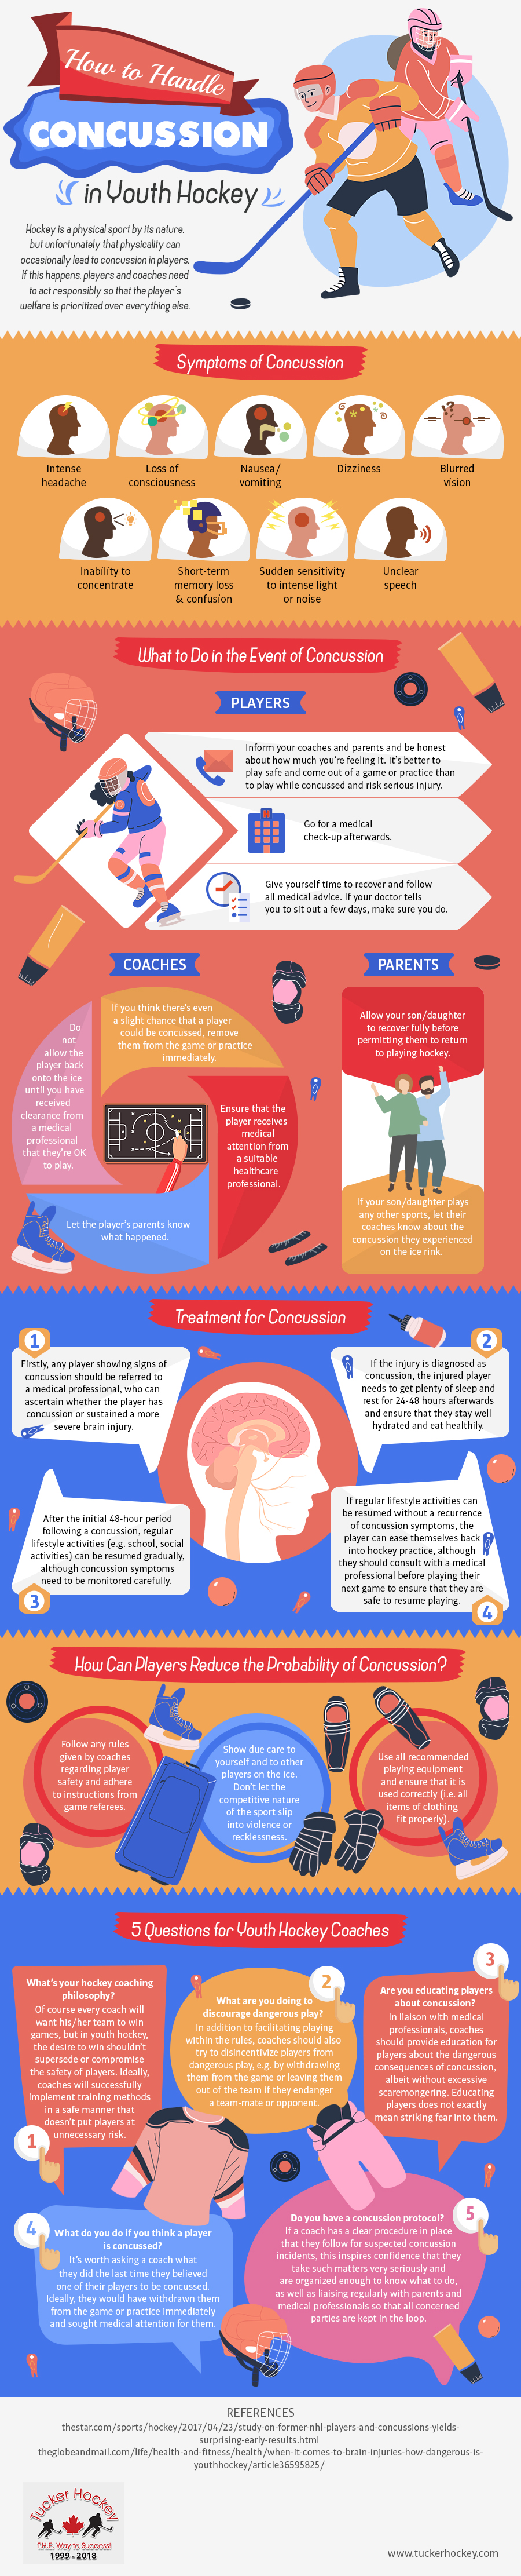 Hockey Concussion Infographic